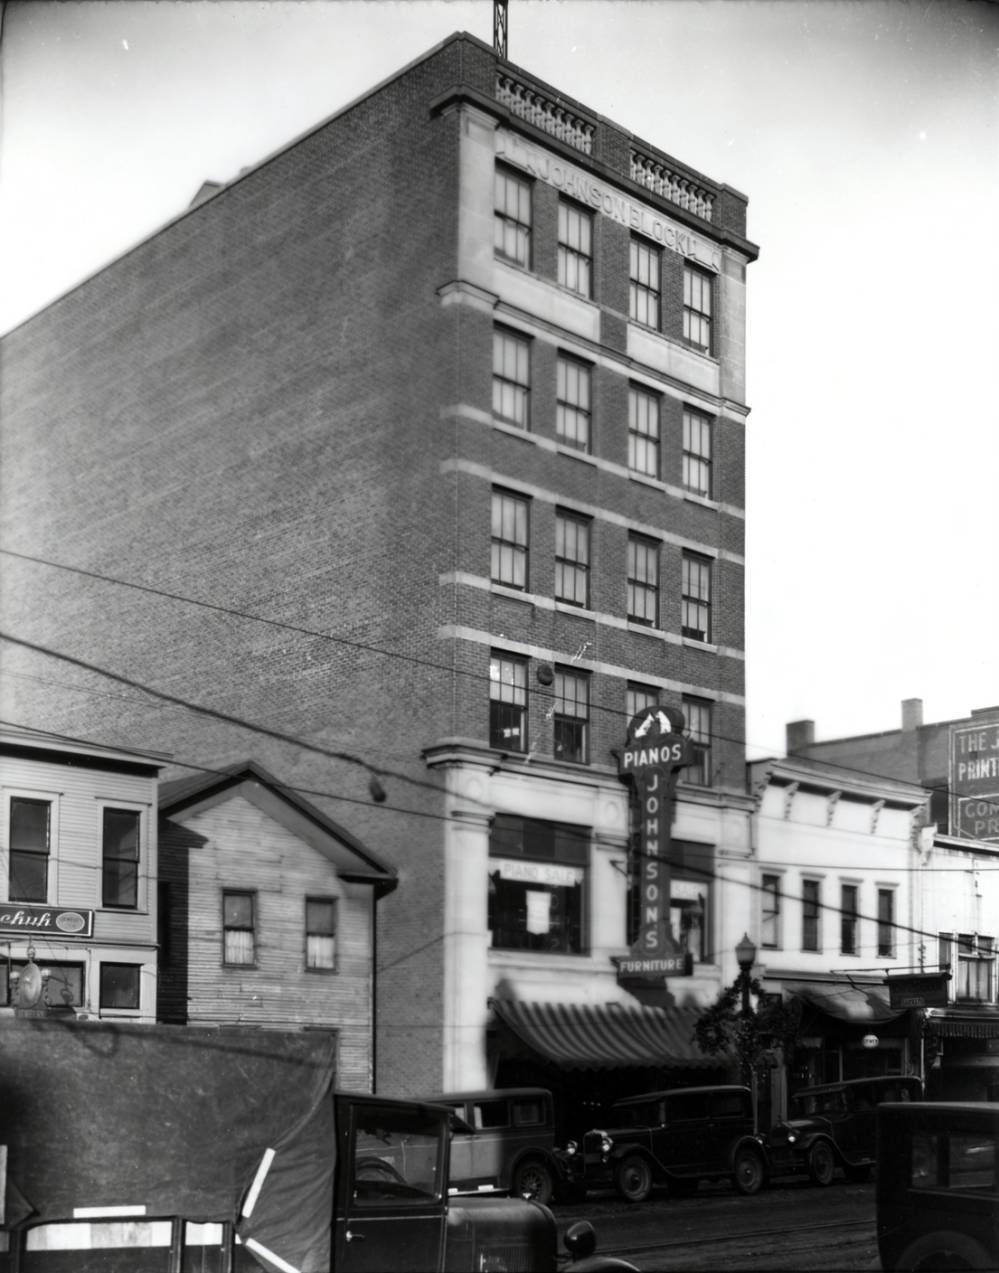 In the 1920s and 1930s, two other buildings occupied the space where the Alliance Area Chamber of Commerce is today at 210 E. Main Street, as seen in this 1929 photograph.